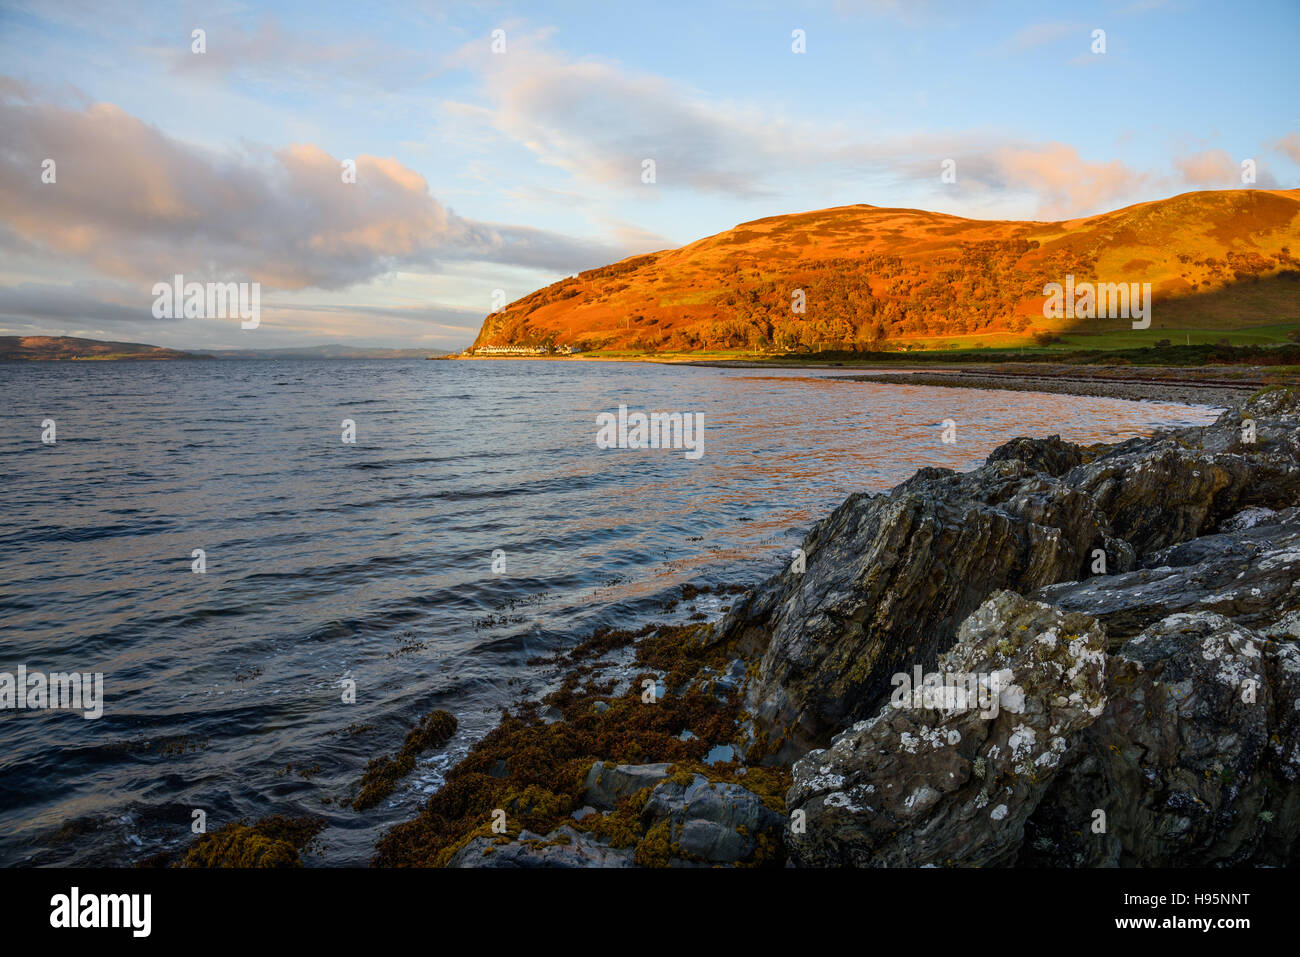 Catacol, Isle of Arran, North Ayrshire, Scotland - Stock Image